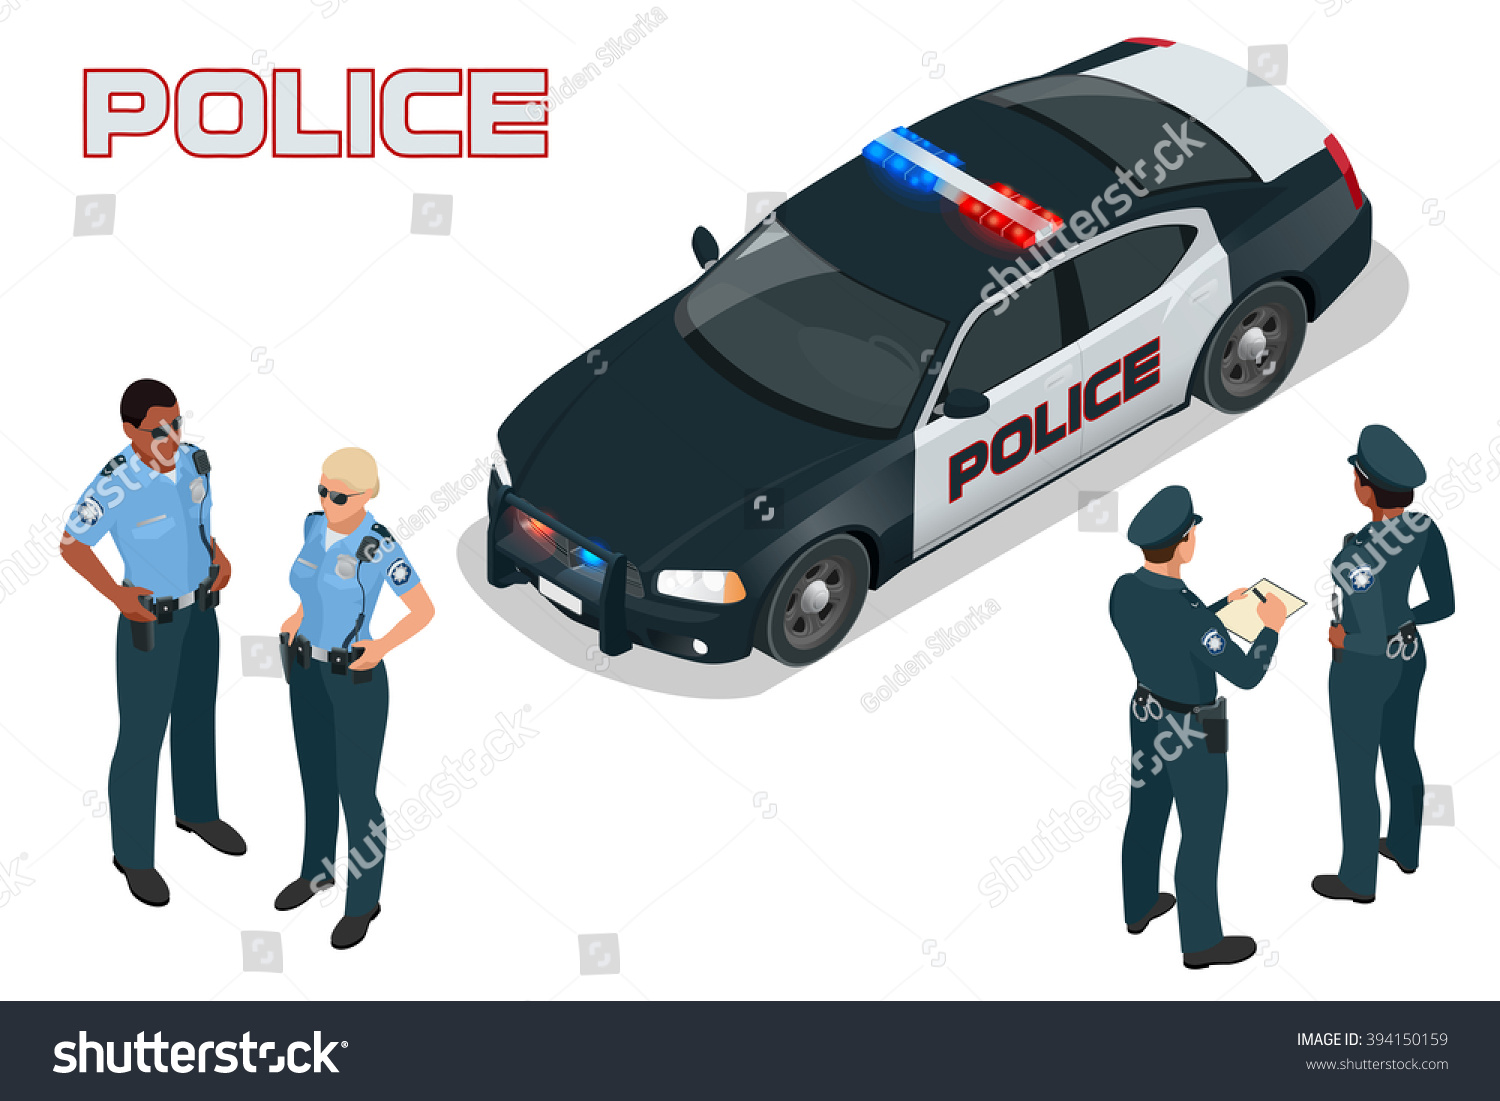 Isometric Police Car Prowler Squad Car Stock Vector 394150159